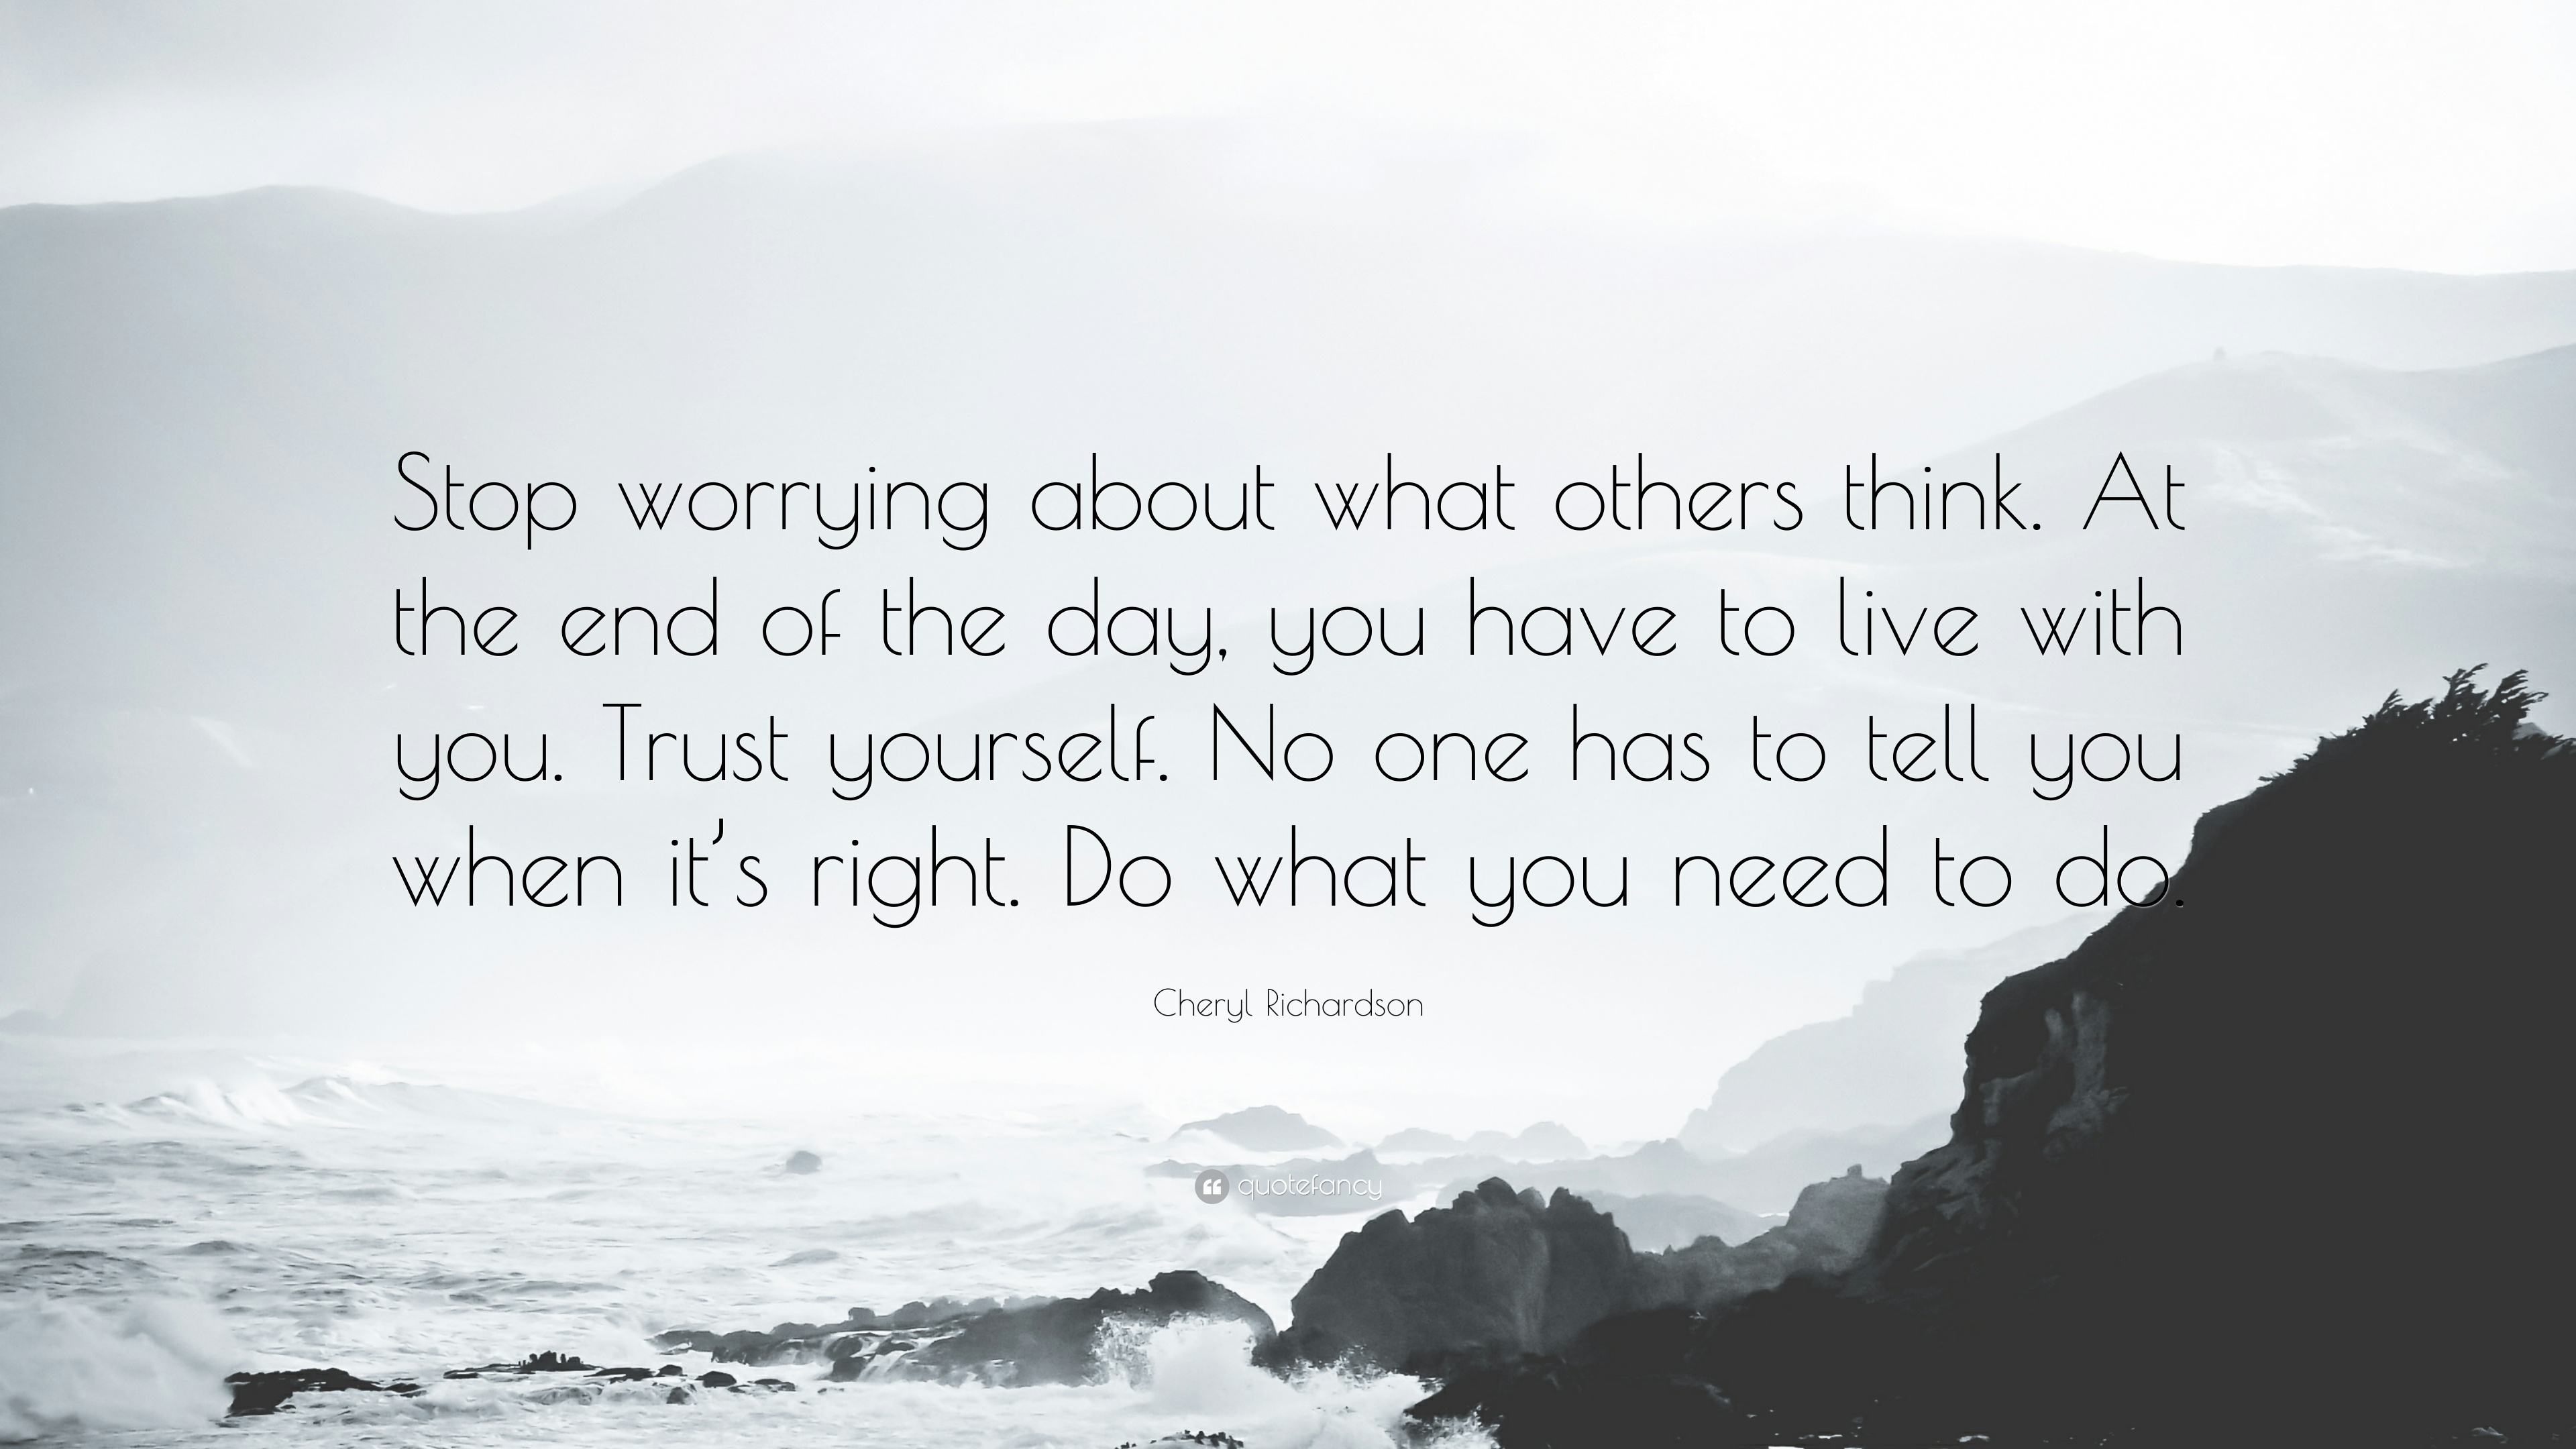 Worrying what others think